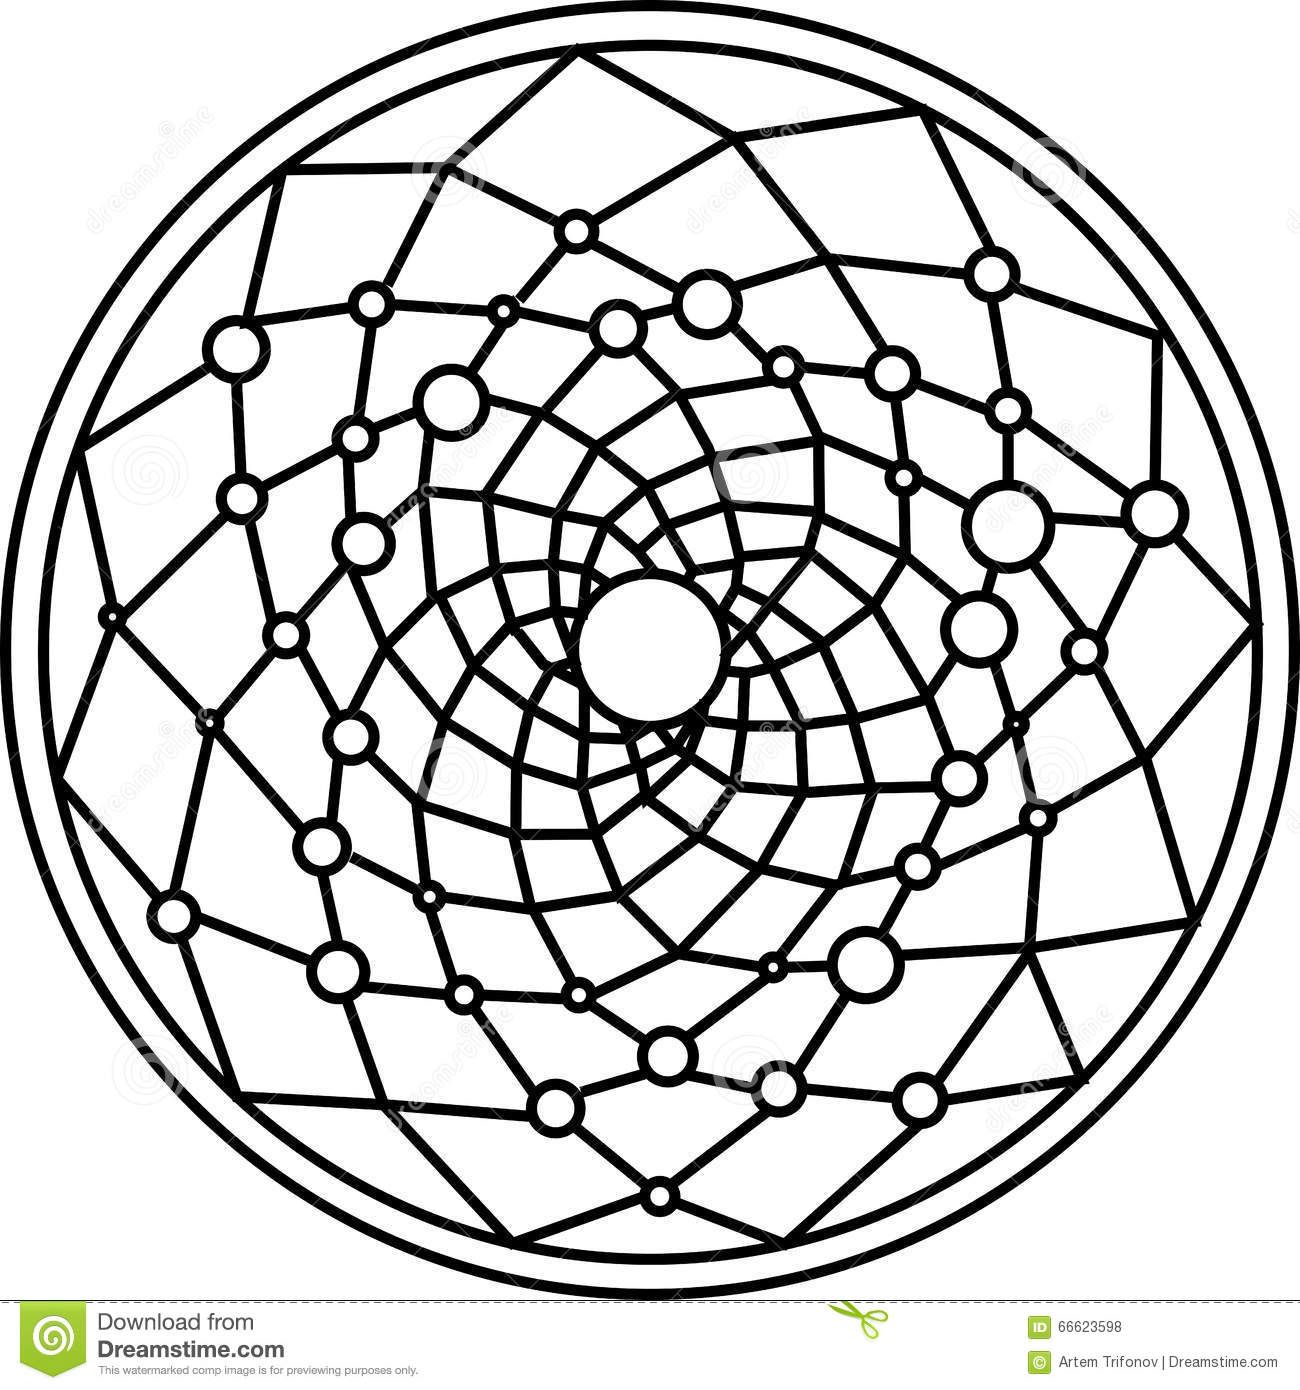 Image result for dream catcher centre black and white clip